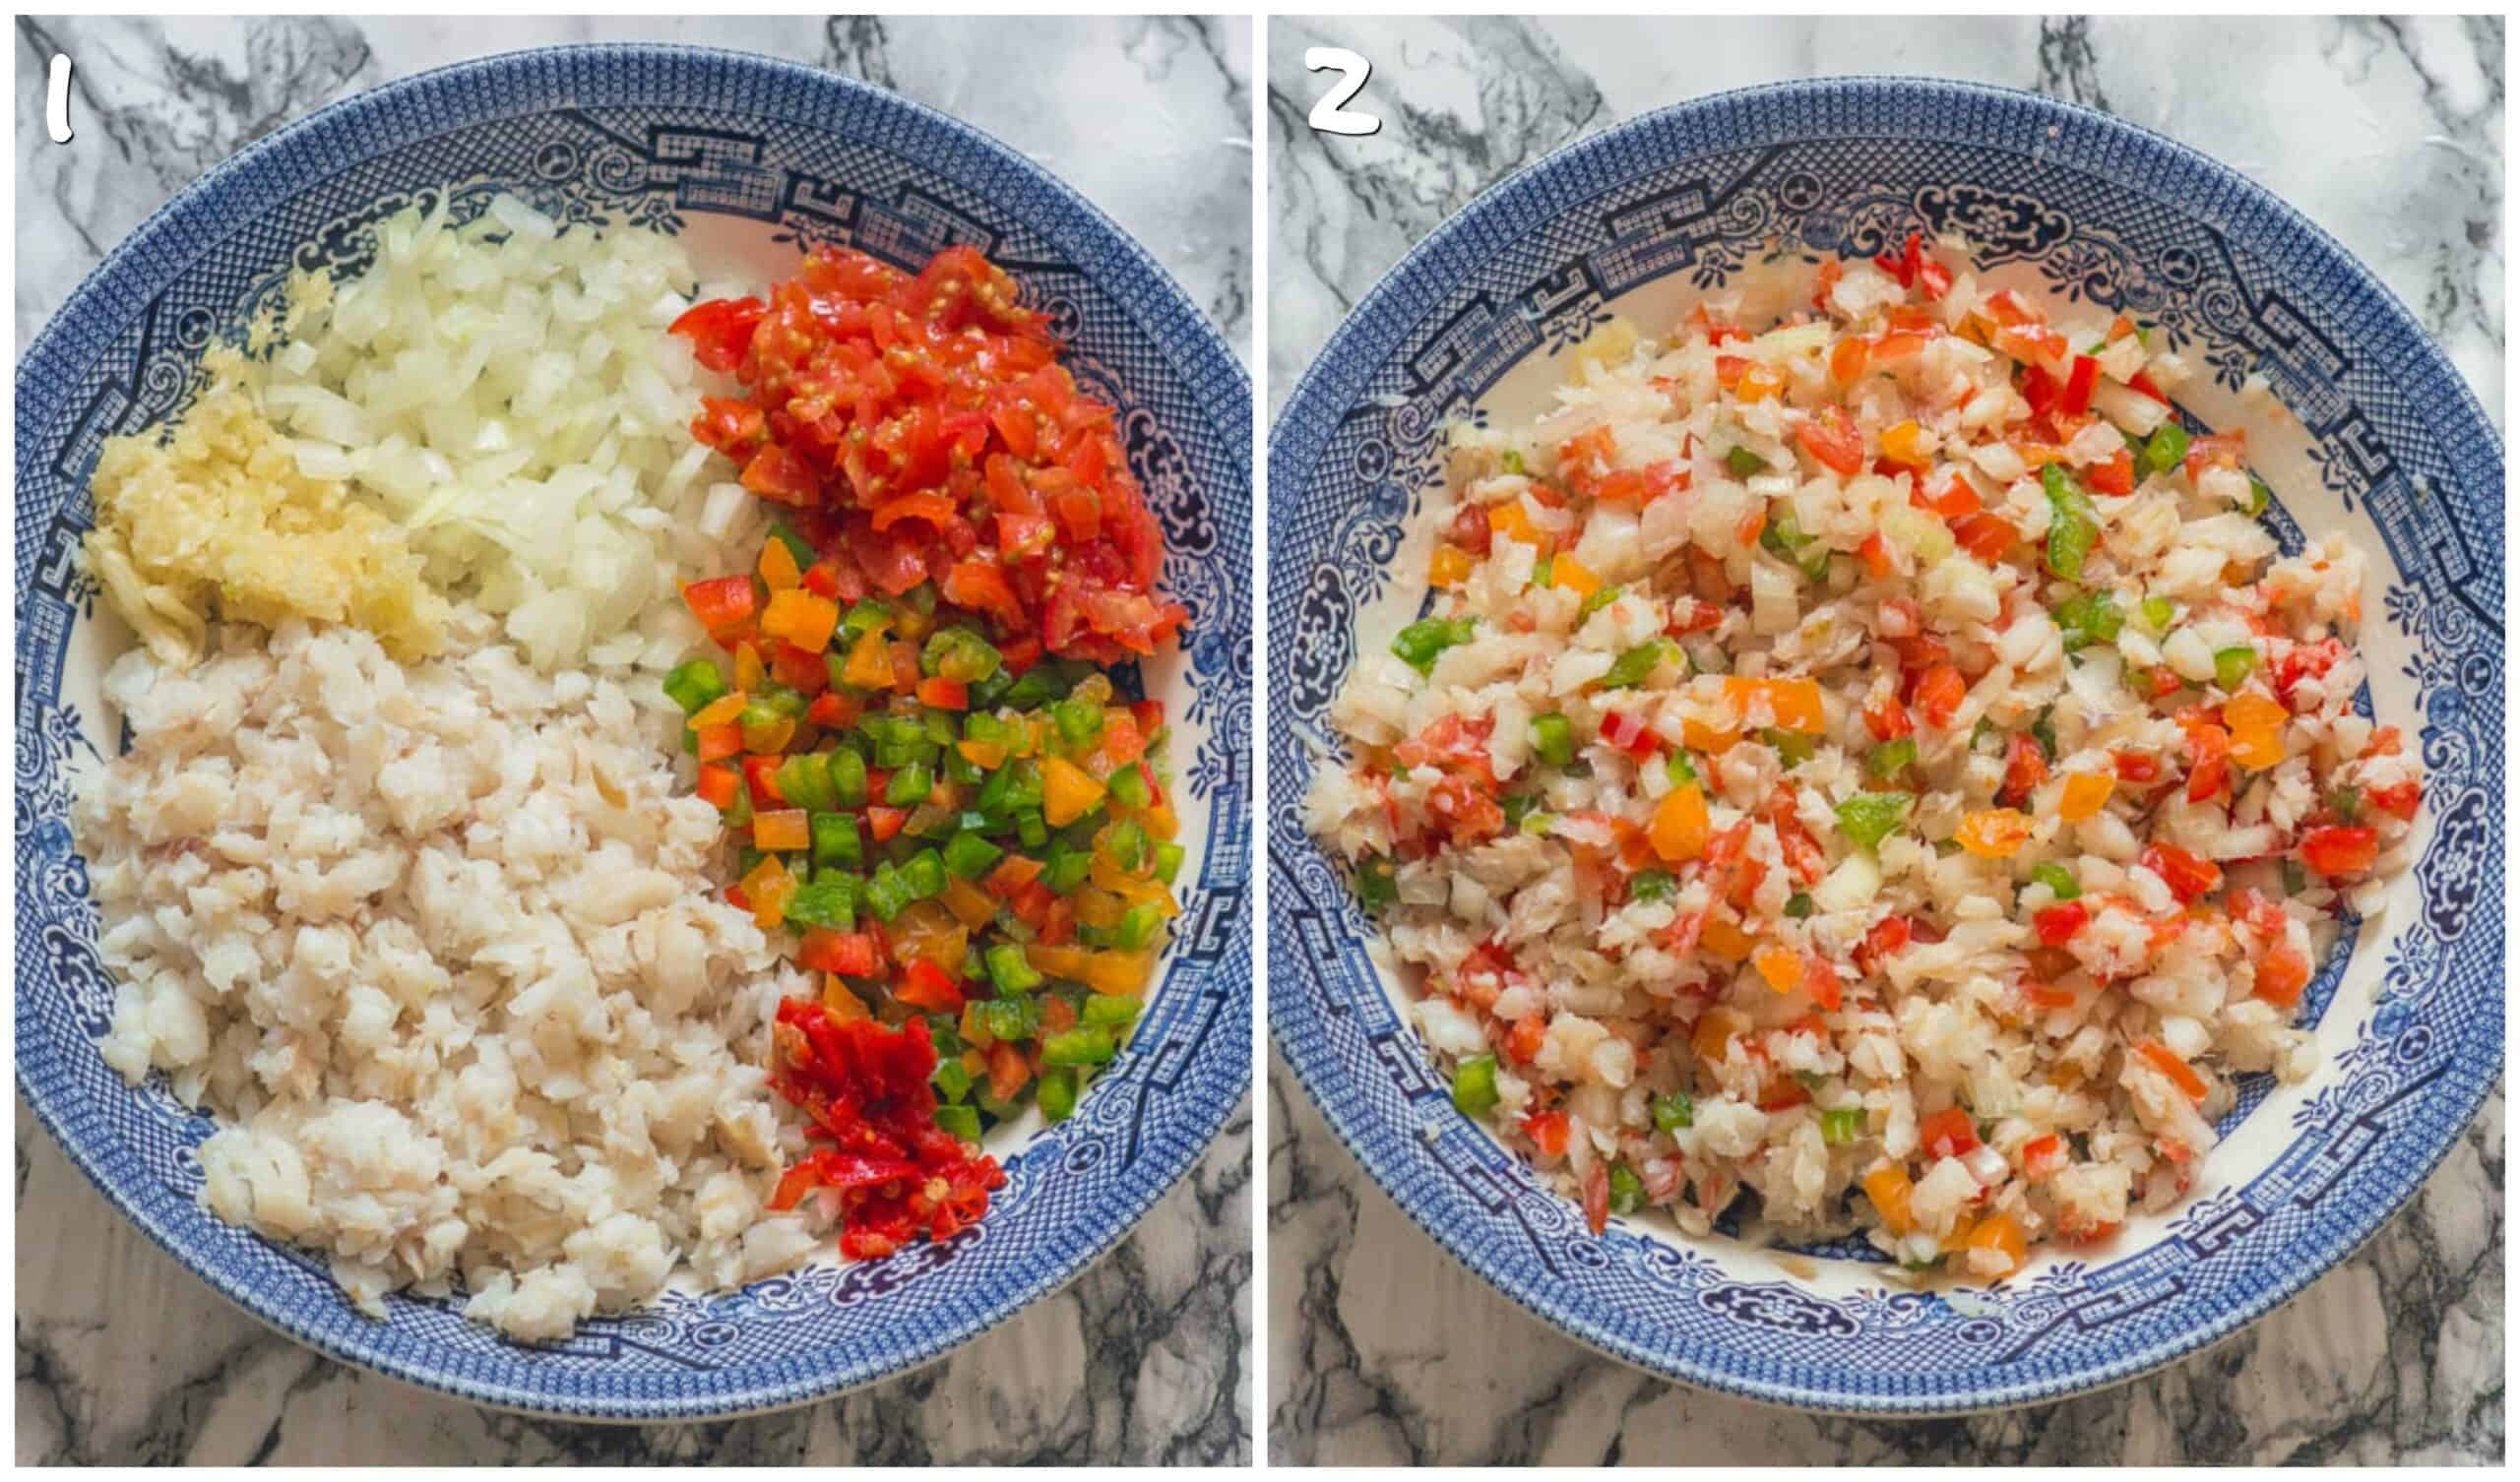 steps 1-2 mixing the vegetables with saltfish